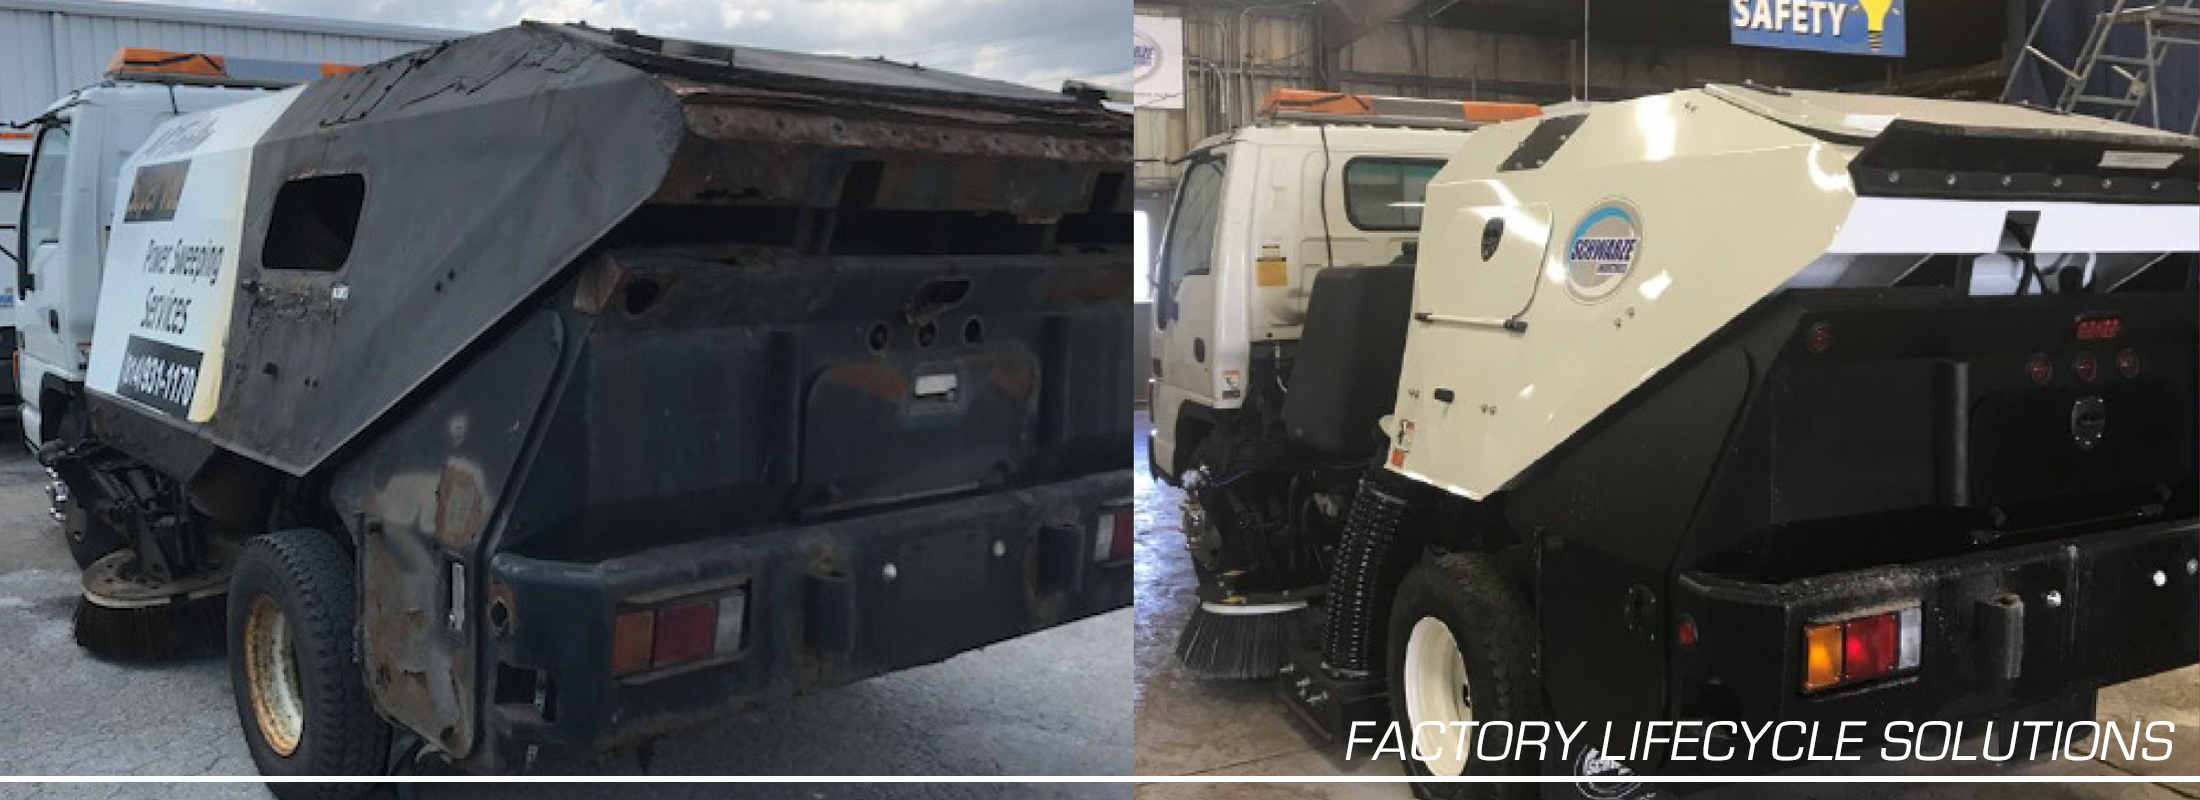 Before and after image of refurbished sweeper